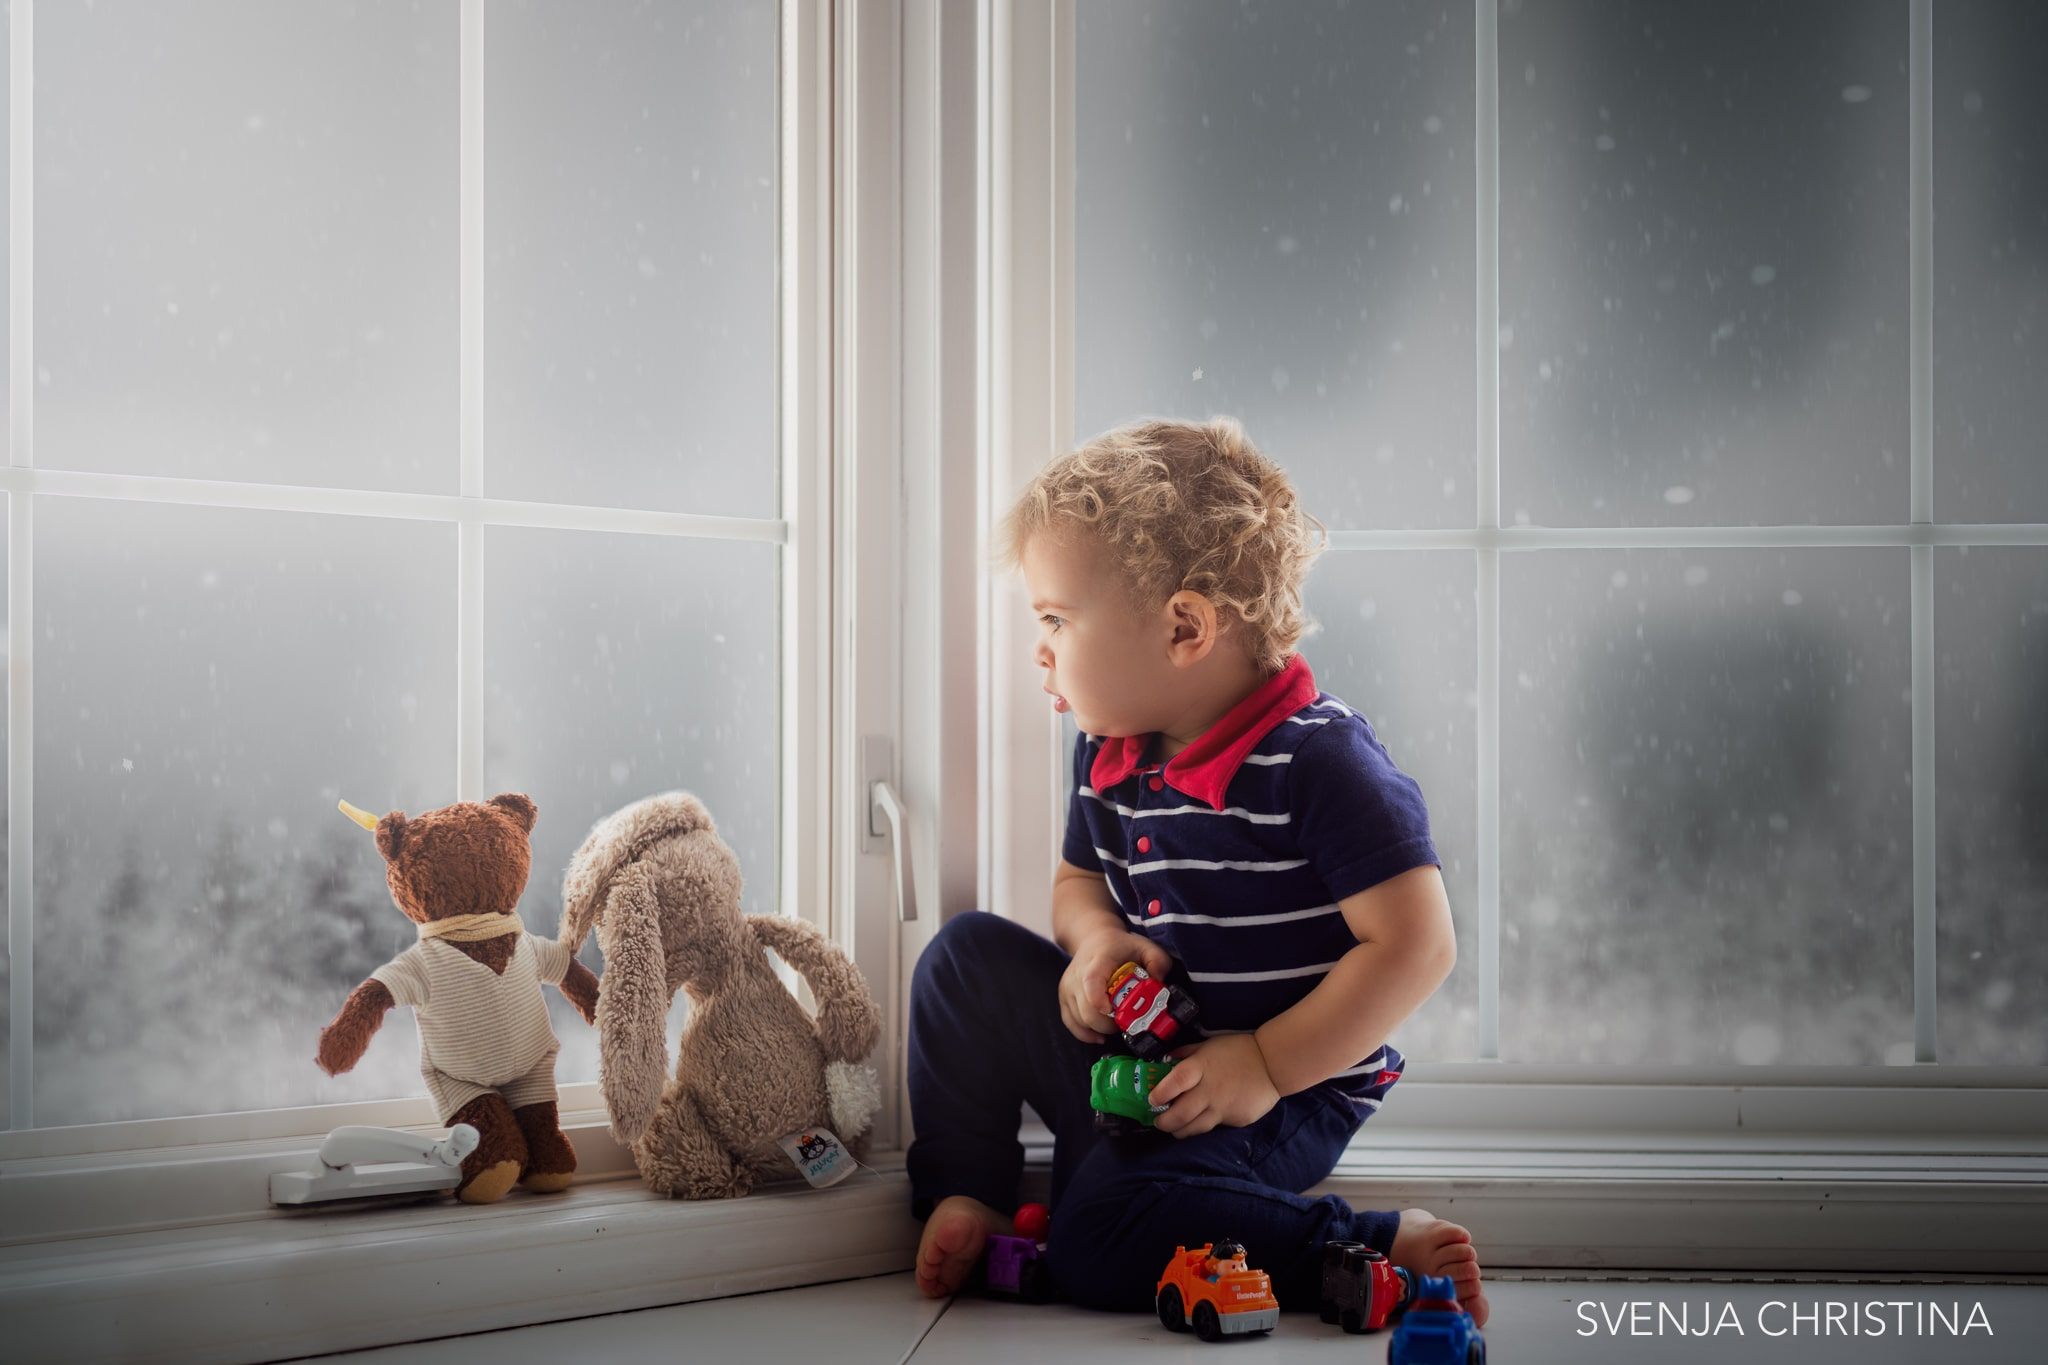 young boy looks outside a window at snow with 2 teddy bears with him